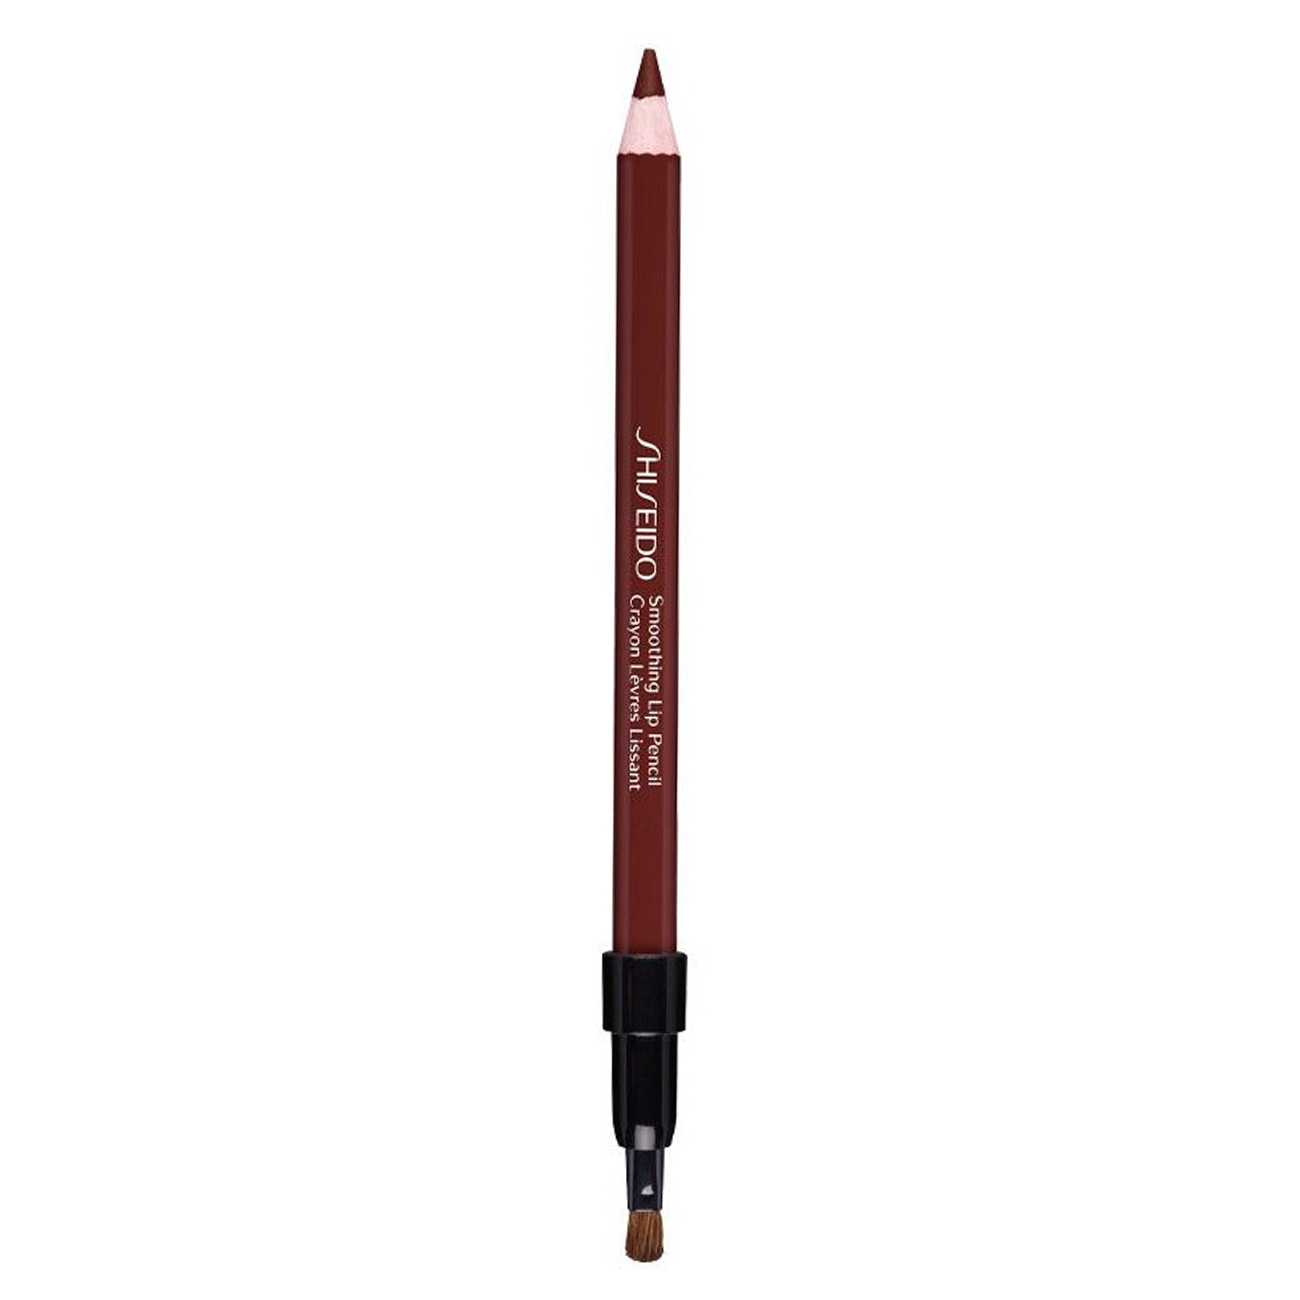 Lip Pencil Smoothing 4 G Coffee Bean Br 607 Shiseido imagine 2021 bestvalue.eu